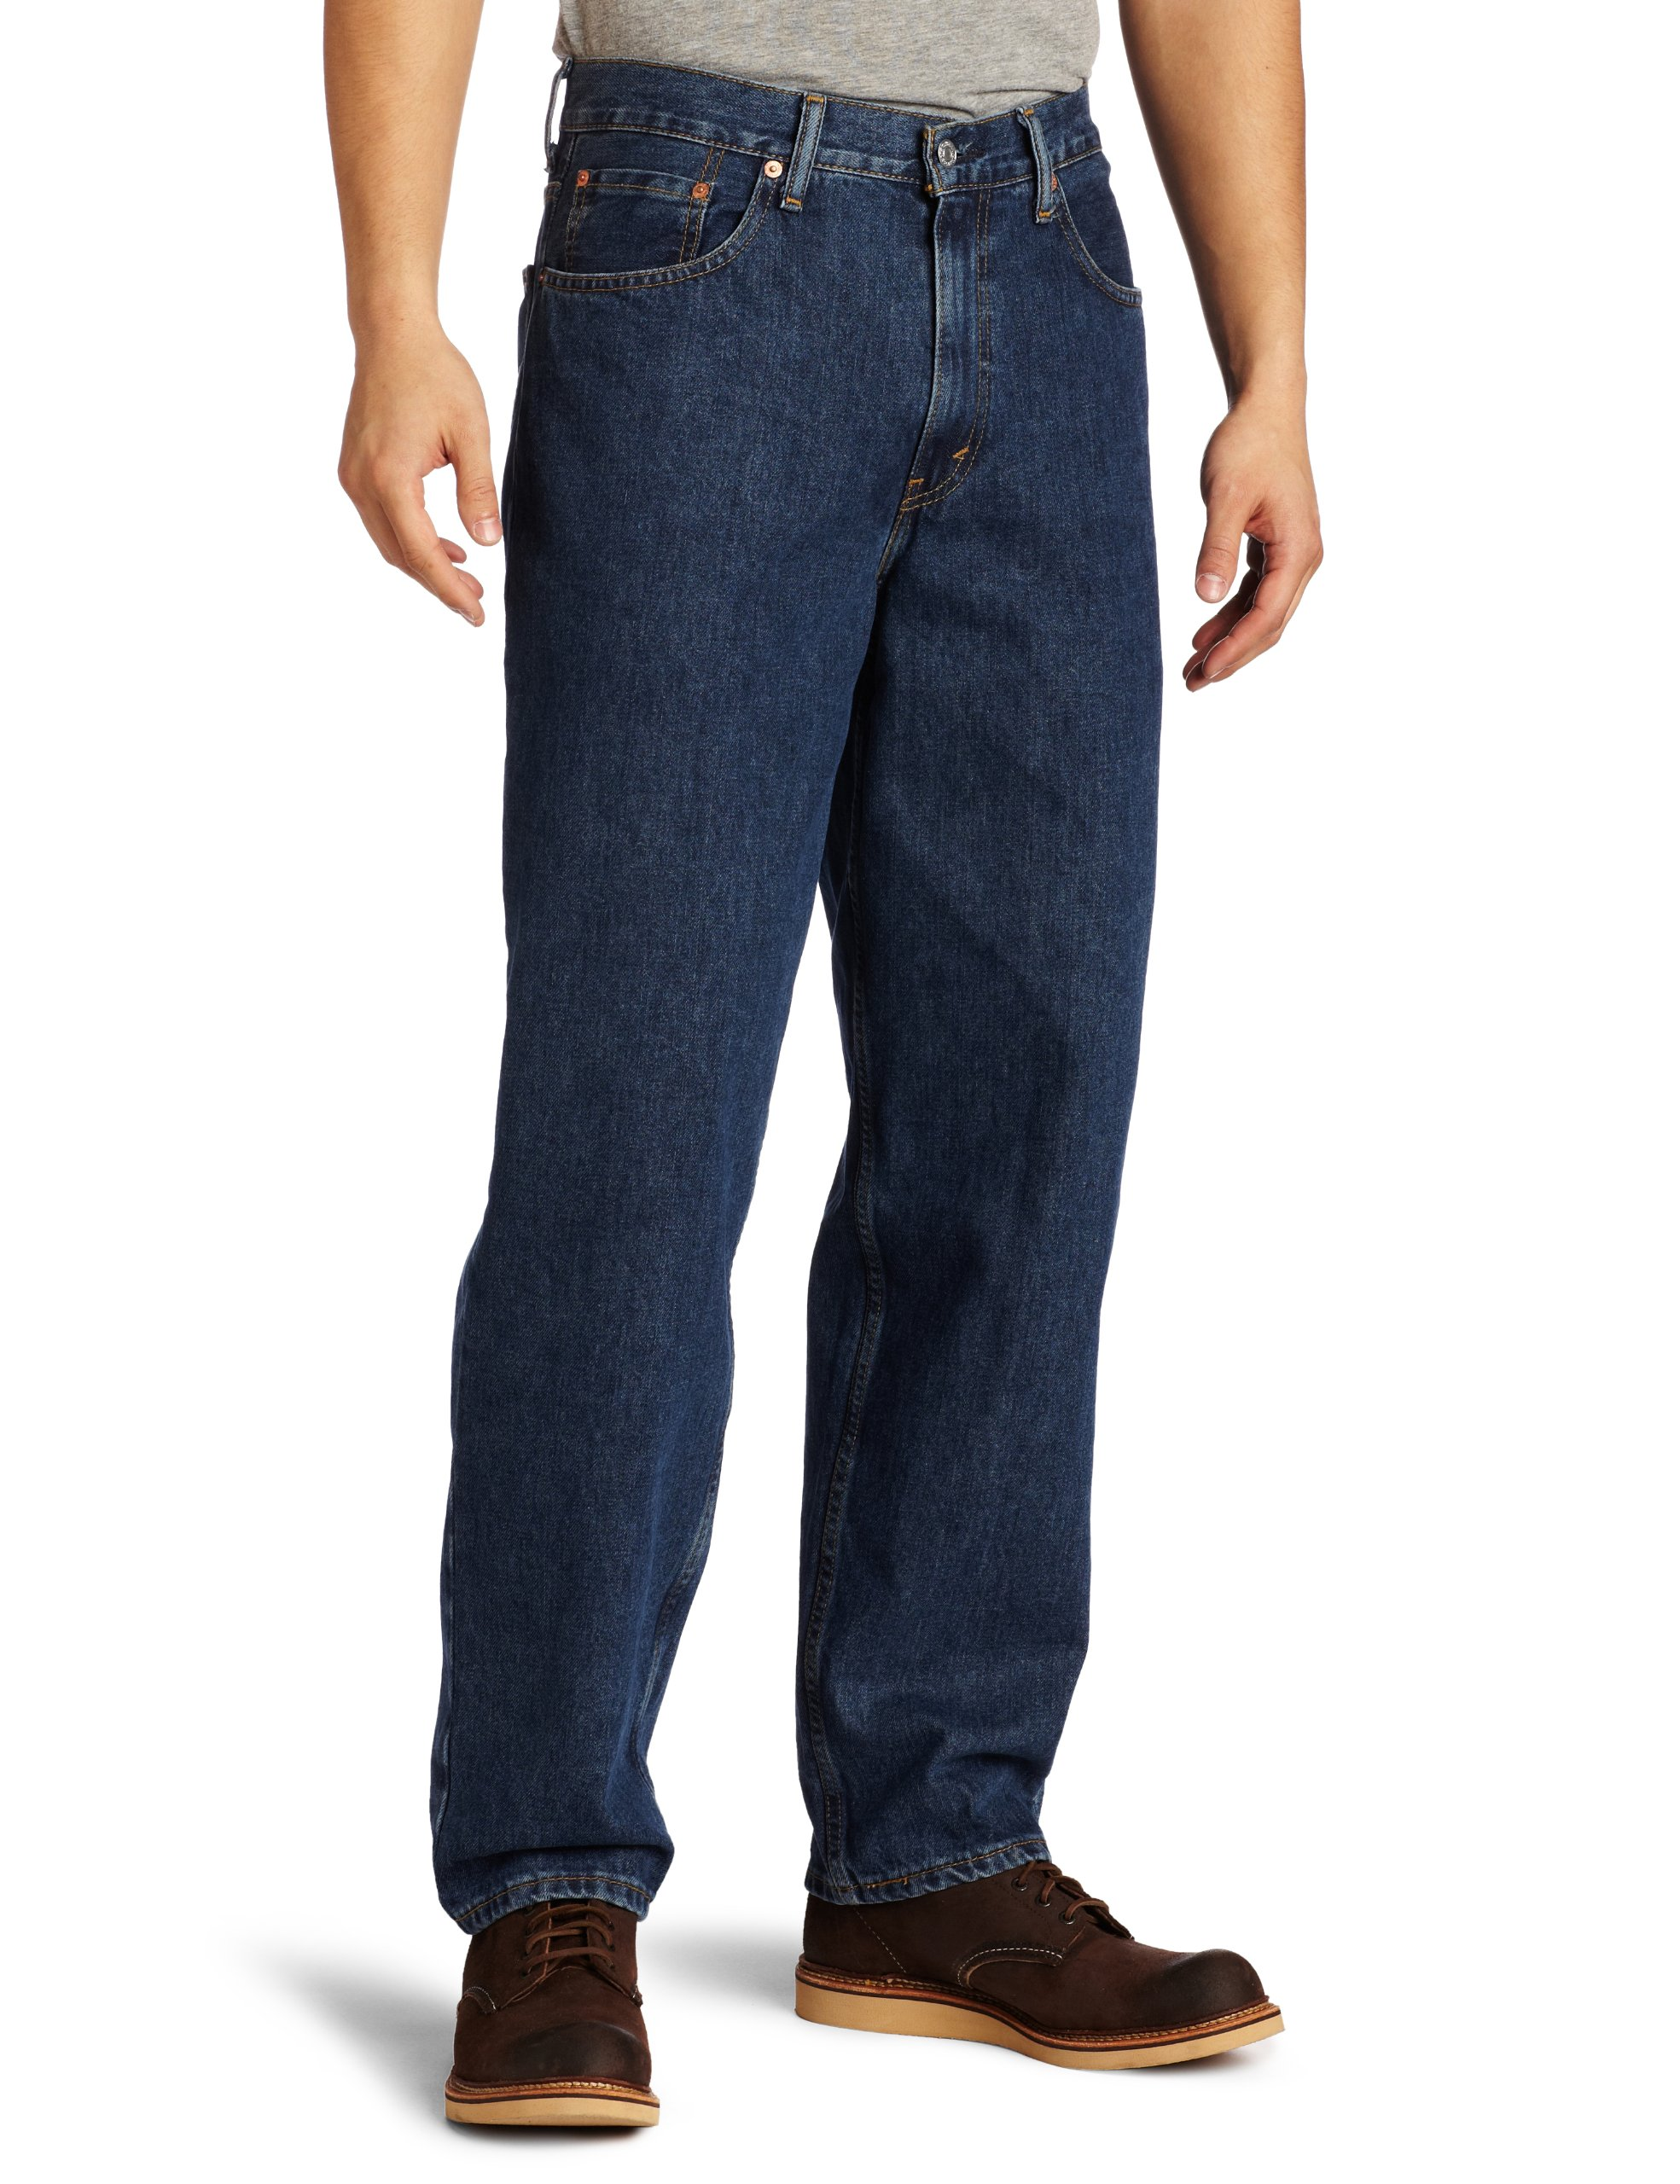 Levi's Men's 560 Comfort Fit Jean, Dark Stonewash, 38x32